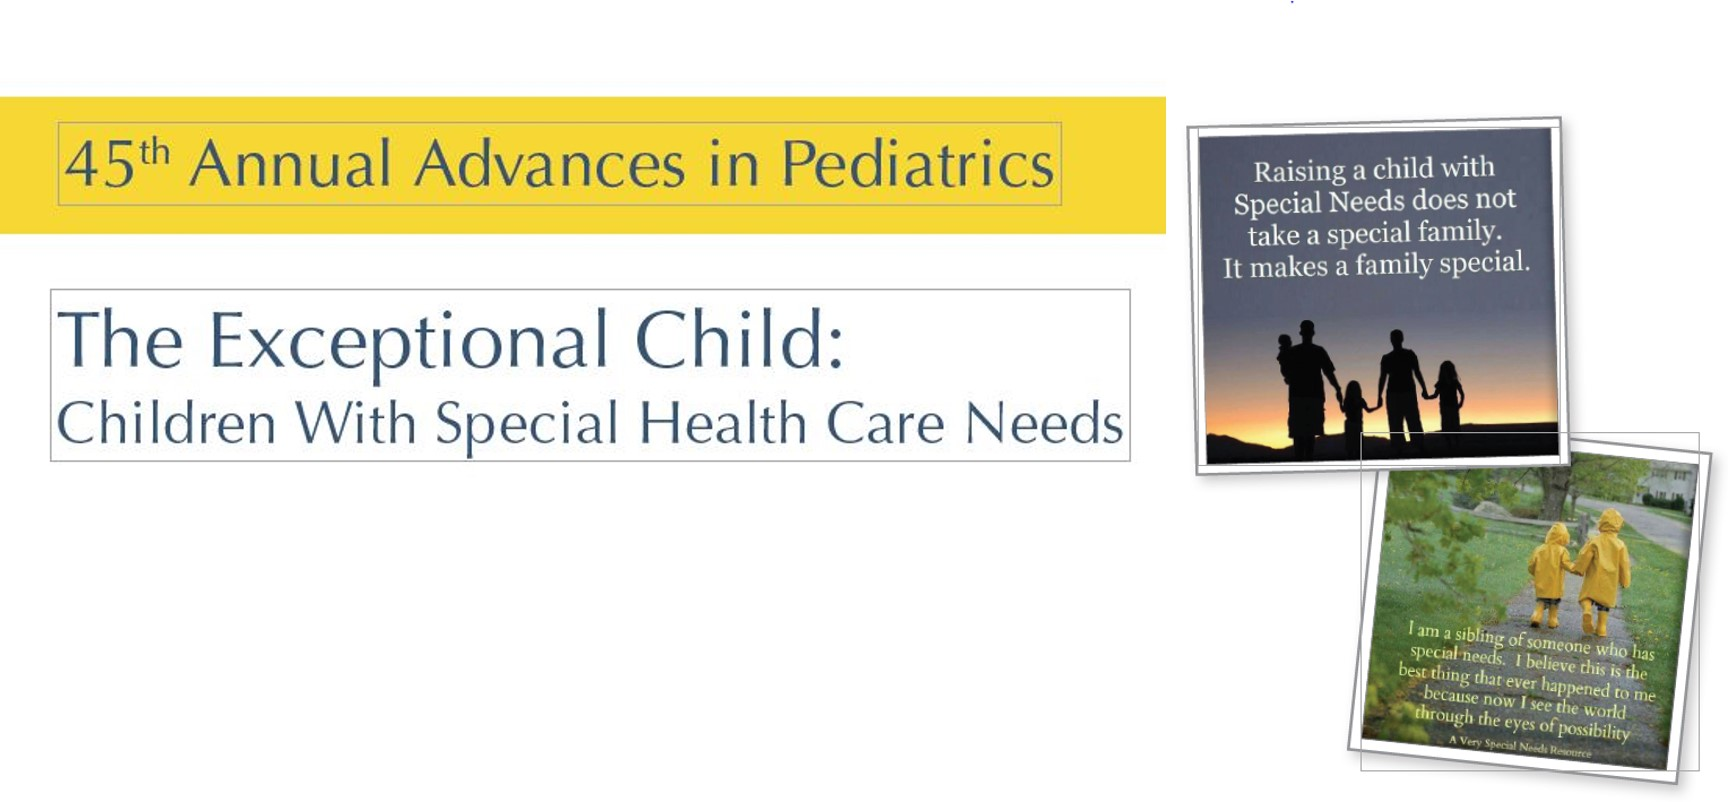 45th Annual Advances in Pediatrics: The Exceptional Child: Children with Special Health Care Needs Banner